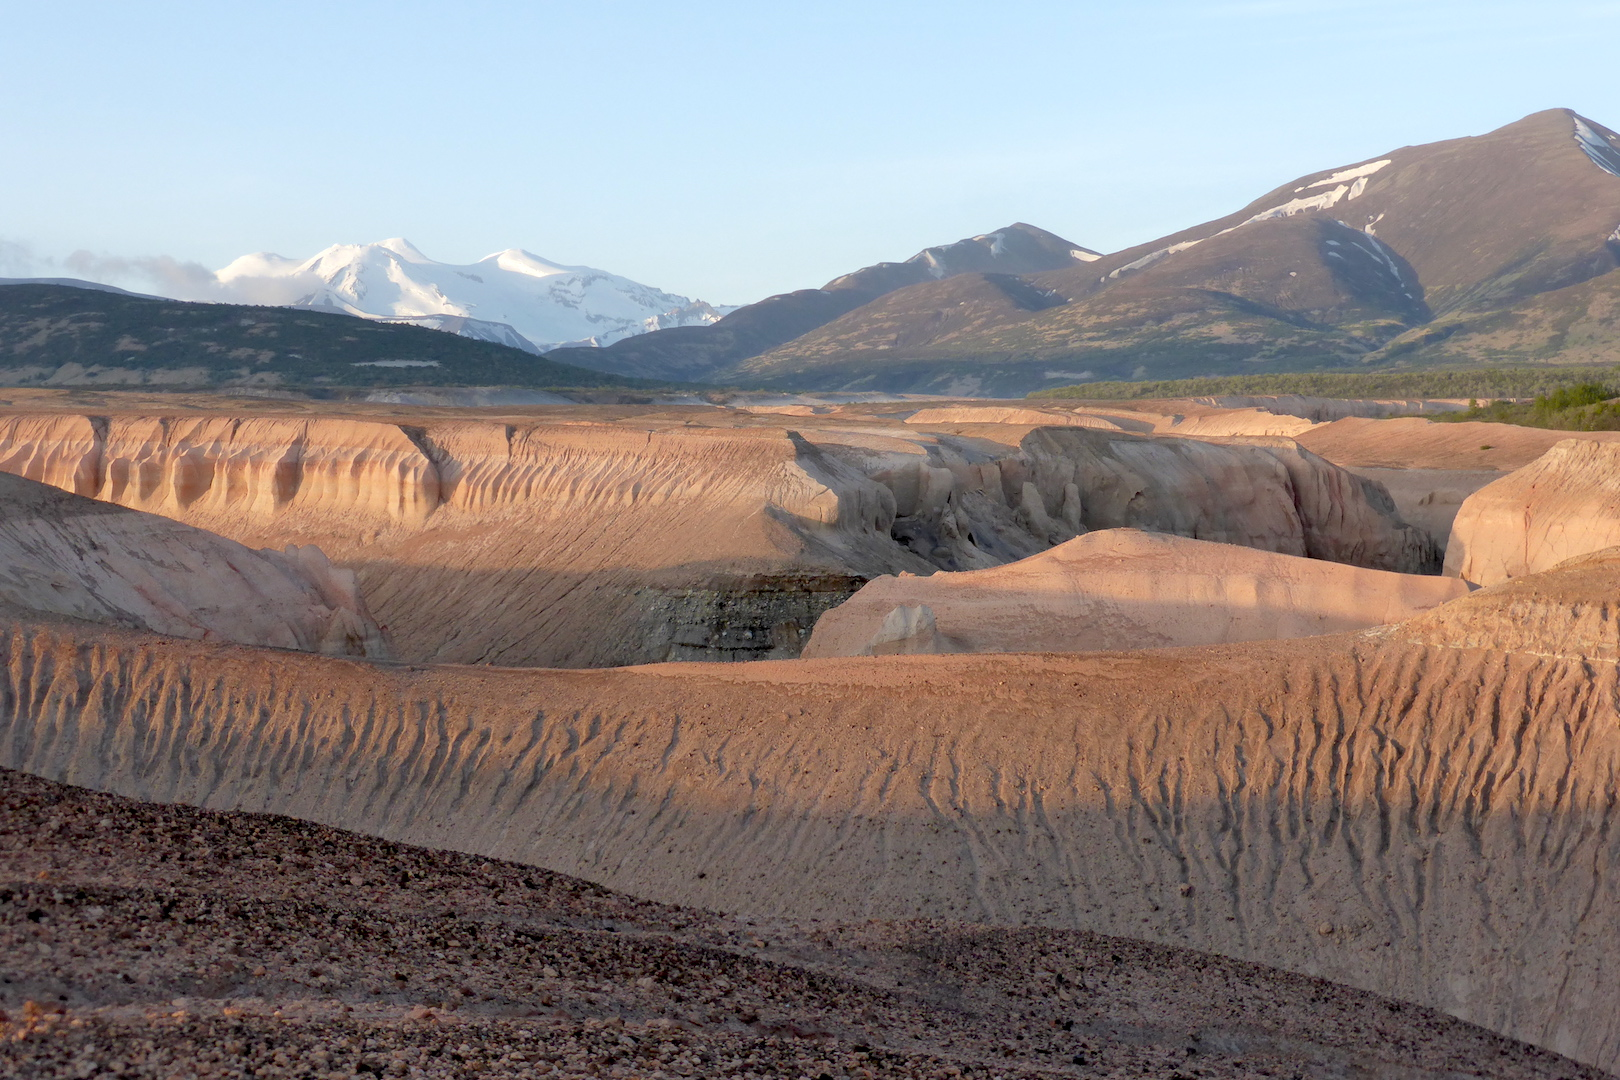 canyons carved through pumice and ash on lower half of photo. mountains line horizon. low angled sunlight highlights depth of canyons